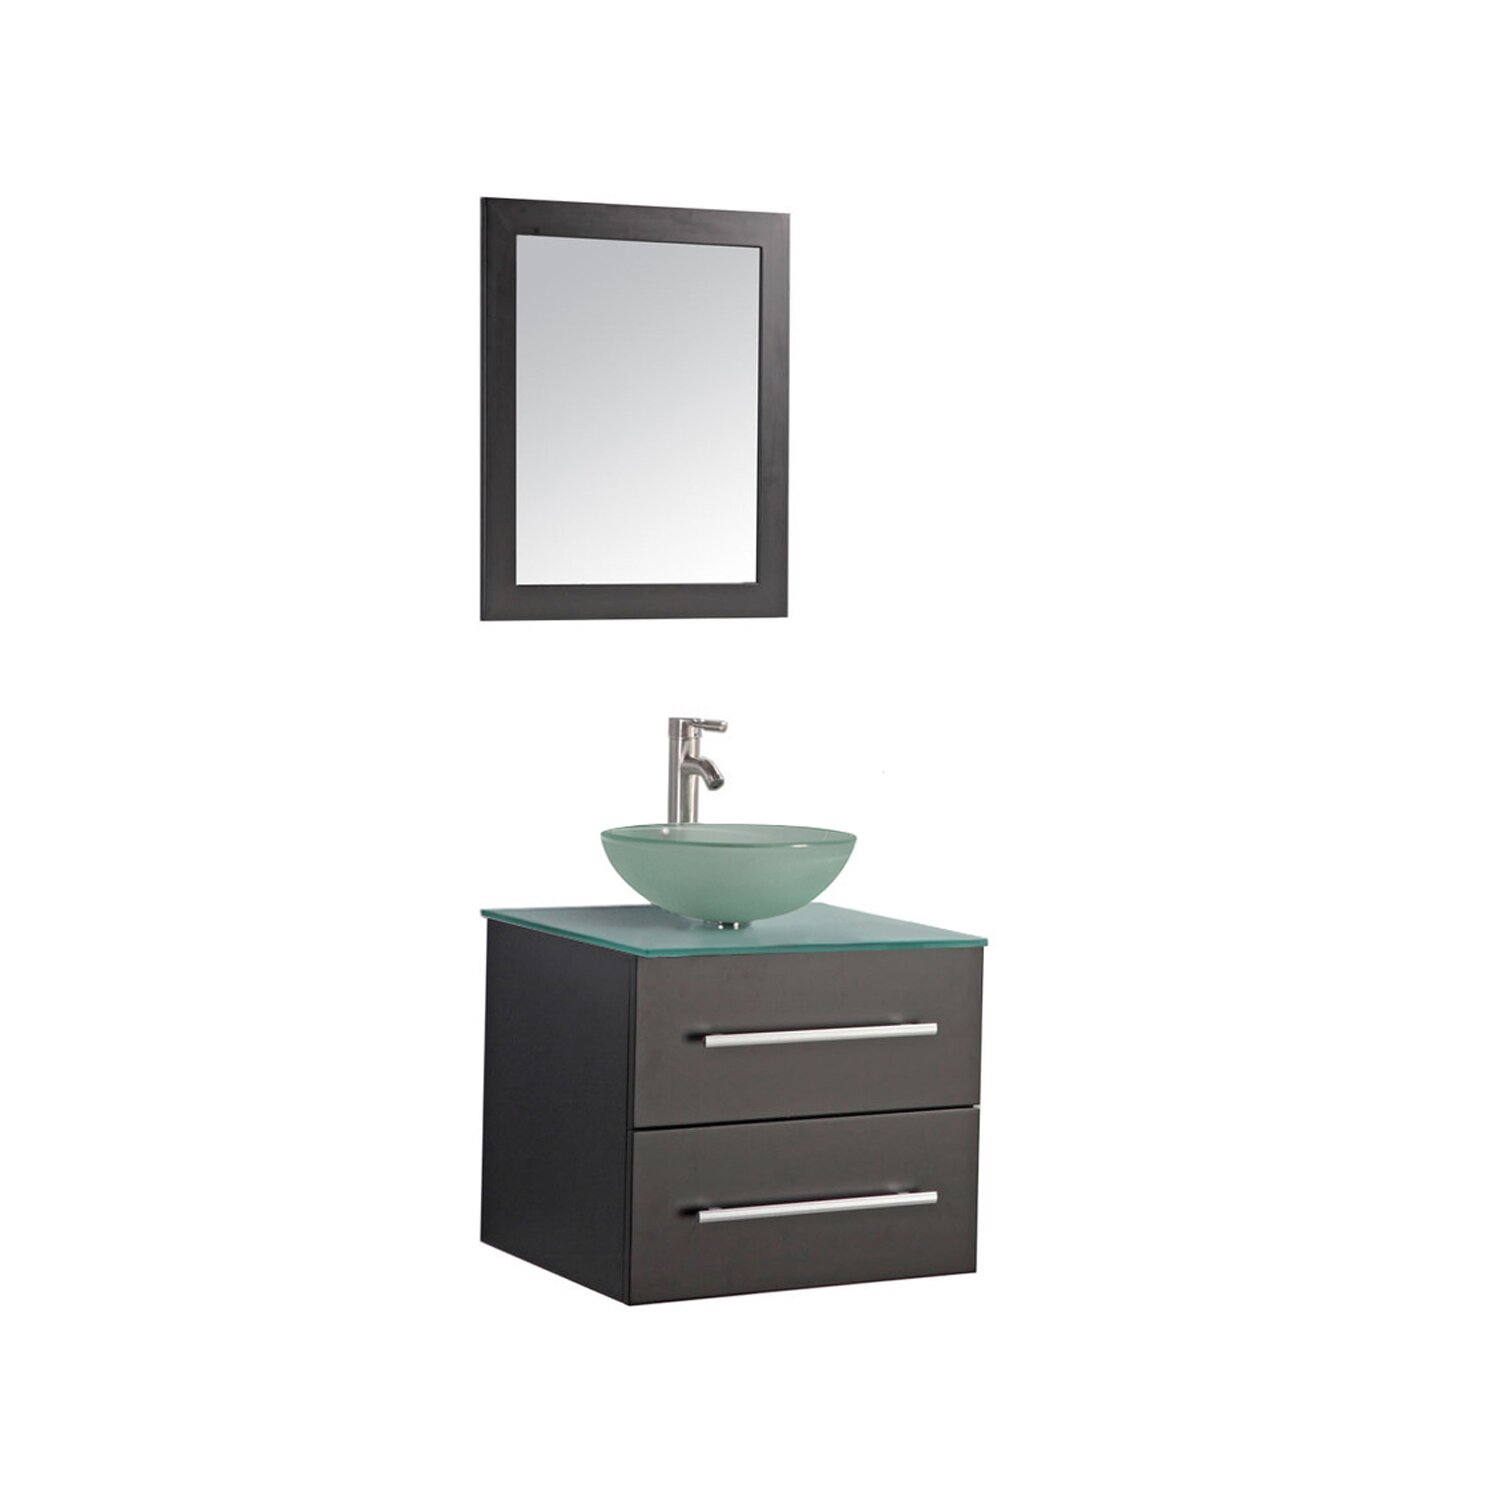 Bathroom single vanity - Mtd Vanities Cuba 24 Quot Single Wall Mounted Bathroom Vanity Set With Mirror